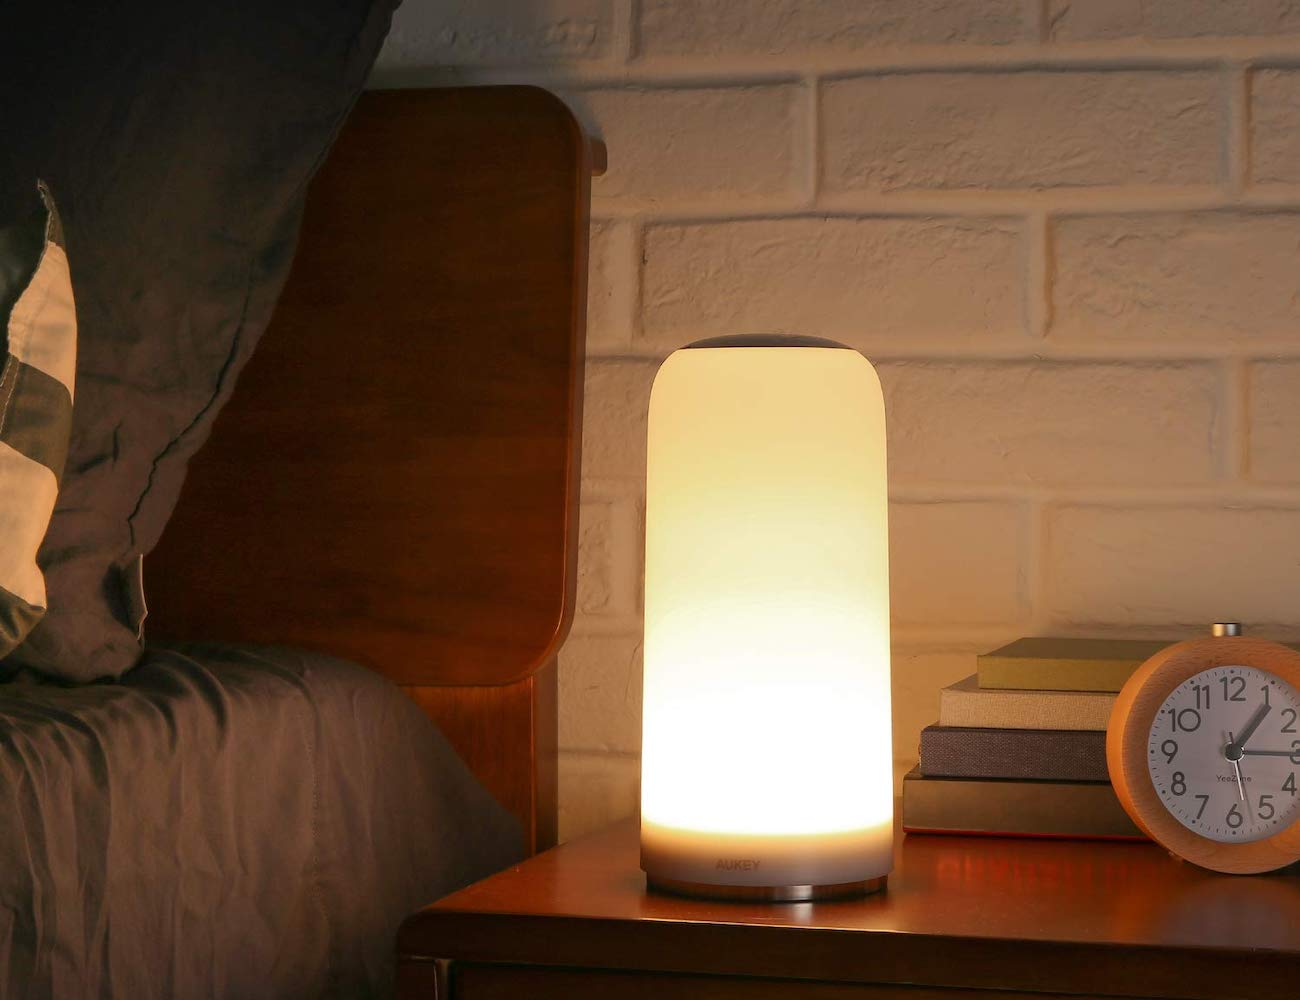 AUKEY Touch-Sensitive Table Lamp provides the perfect amount of light